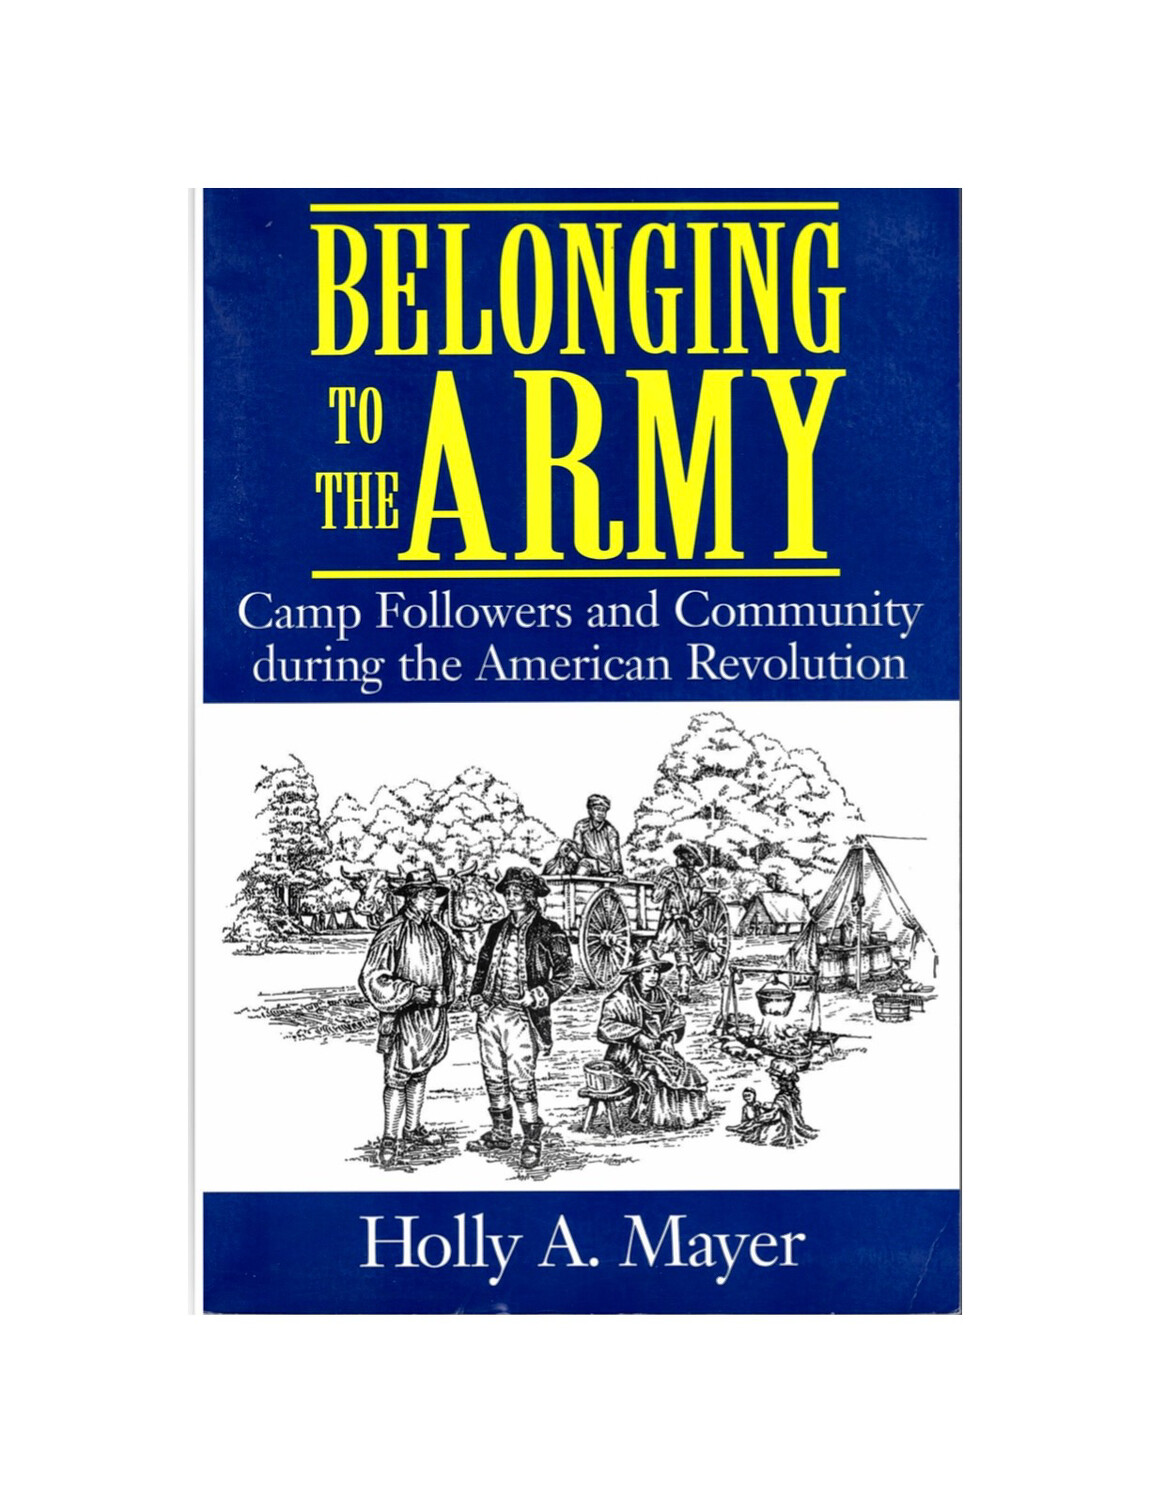 Belonging To The Army by Holly A. Mayer